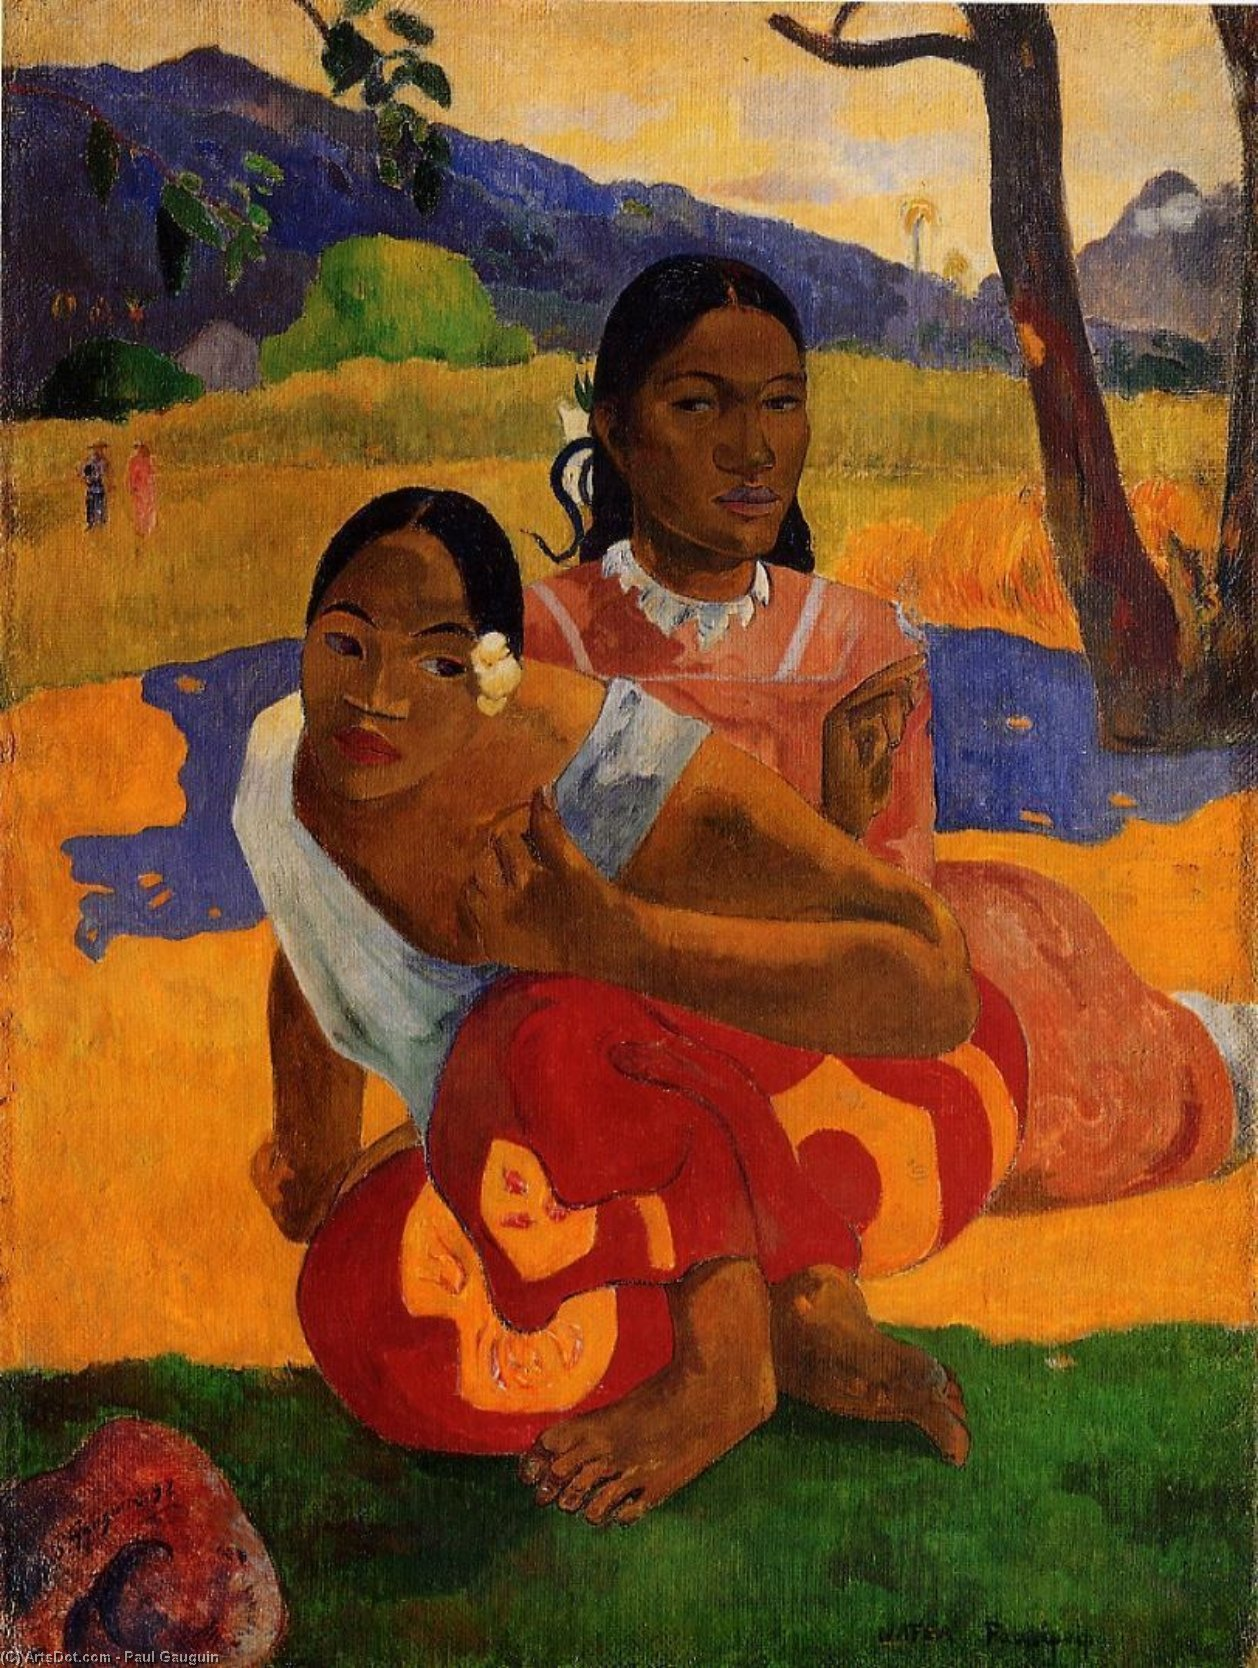 Nafeaffaa Ipolpo (also known as When Will You Marry.) - Paul Gauguin